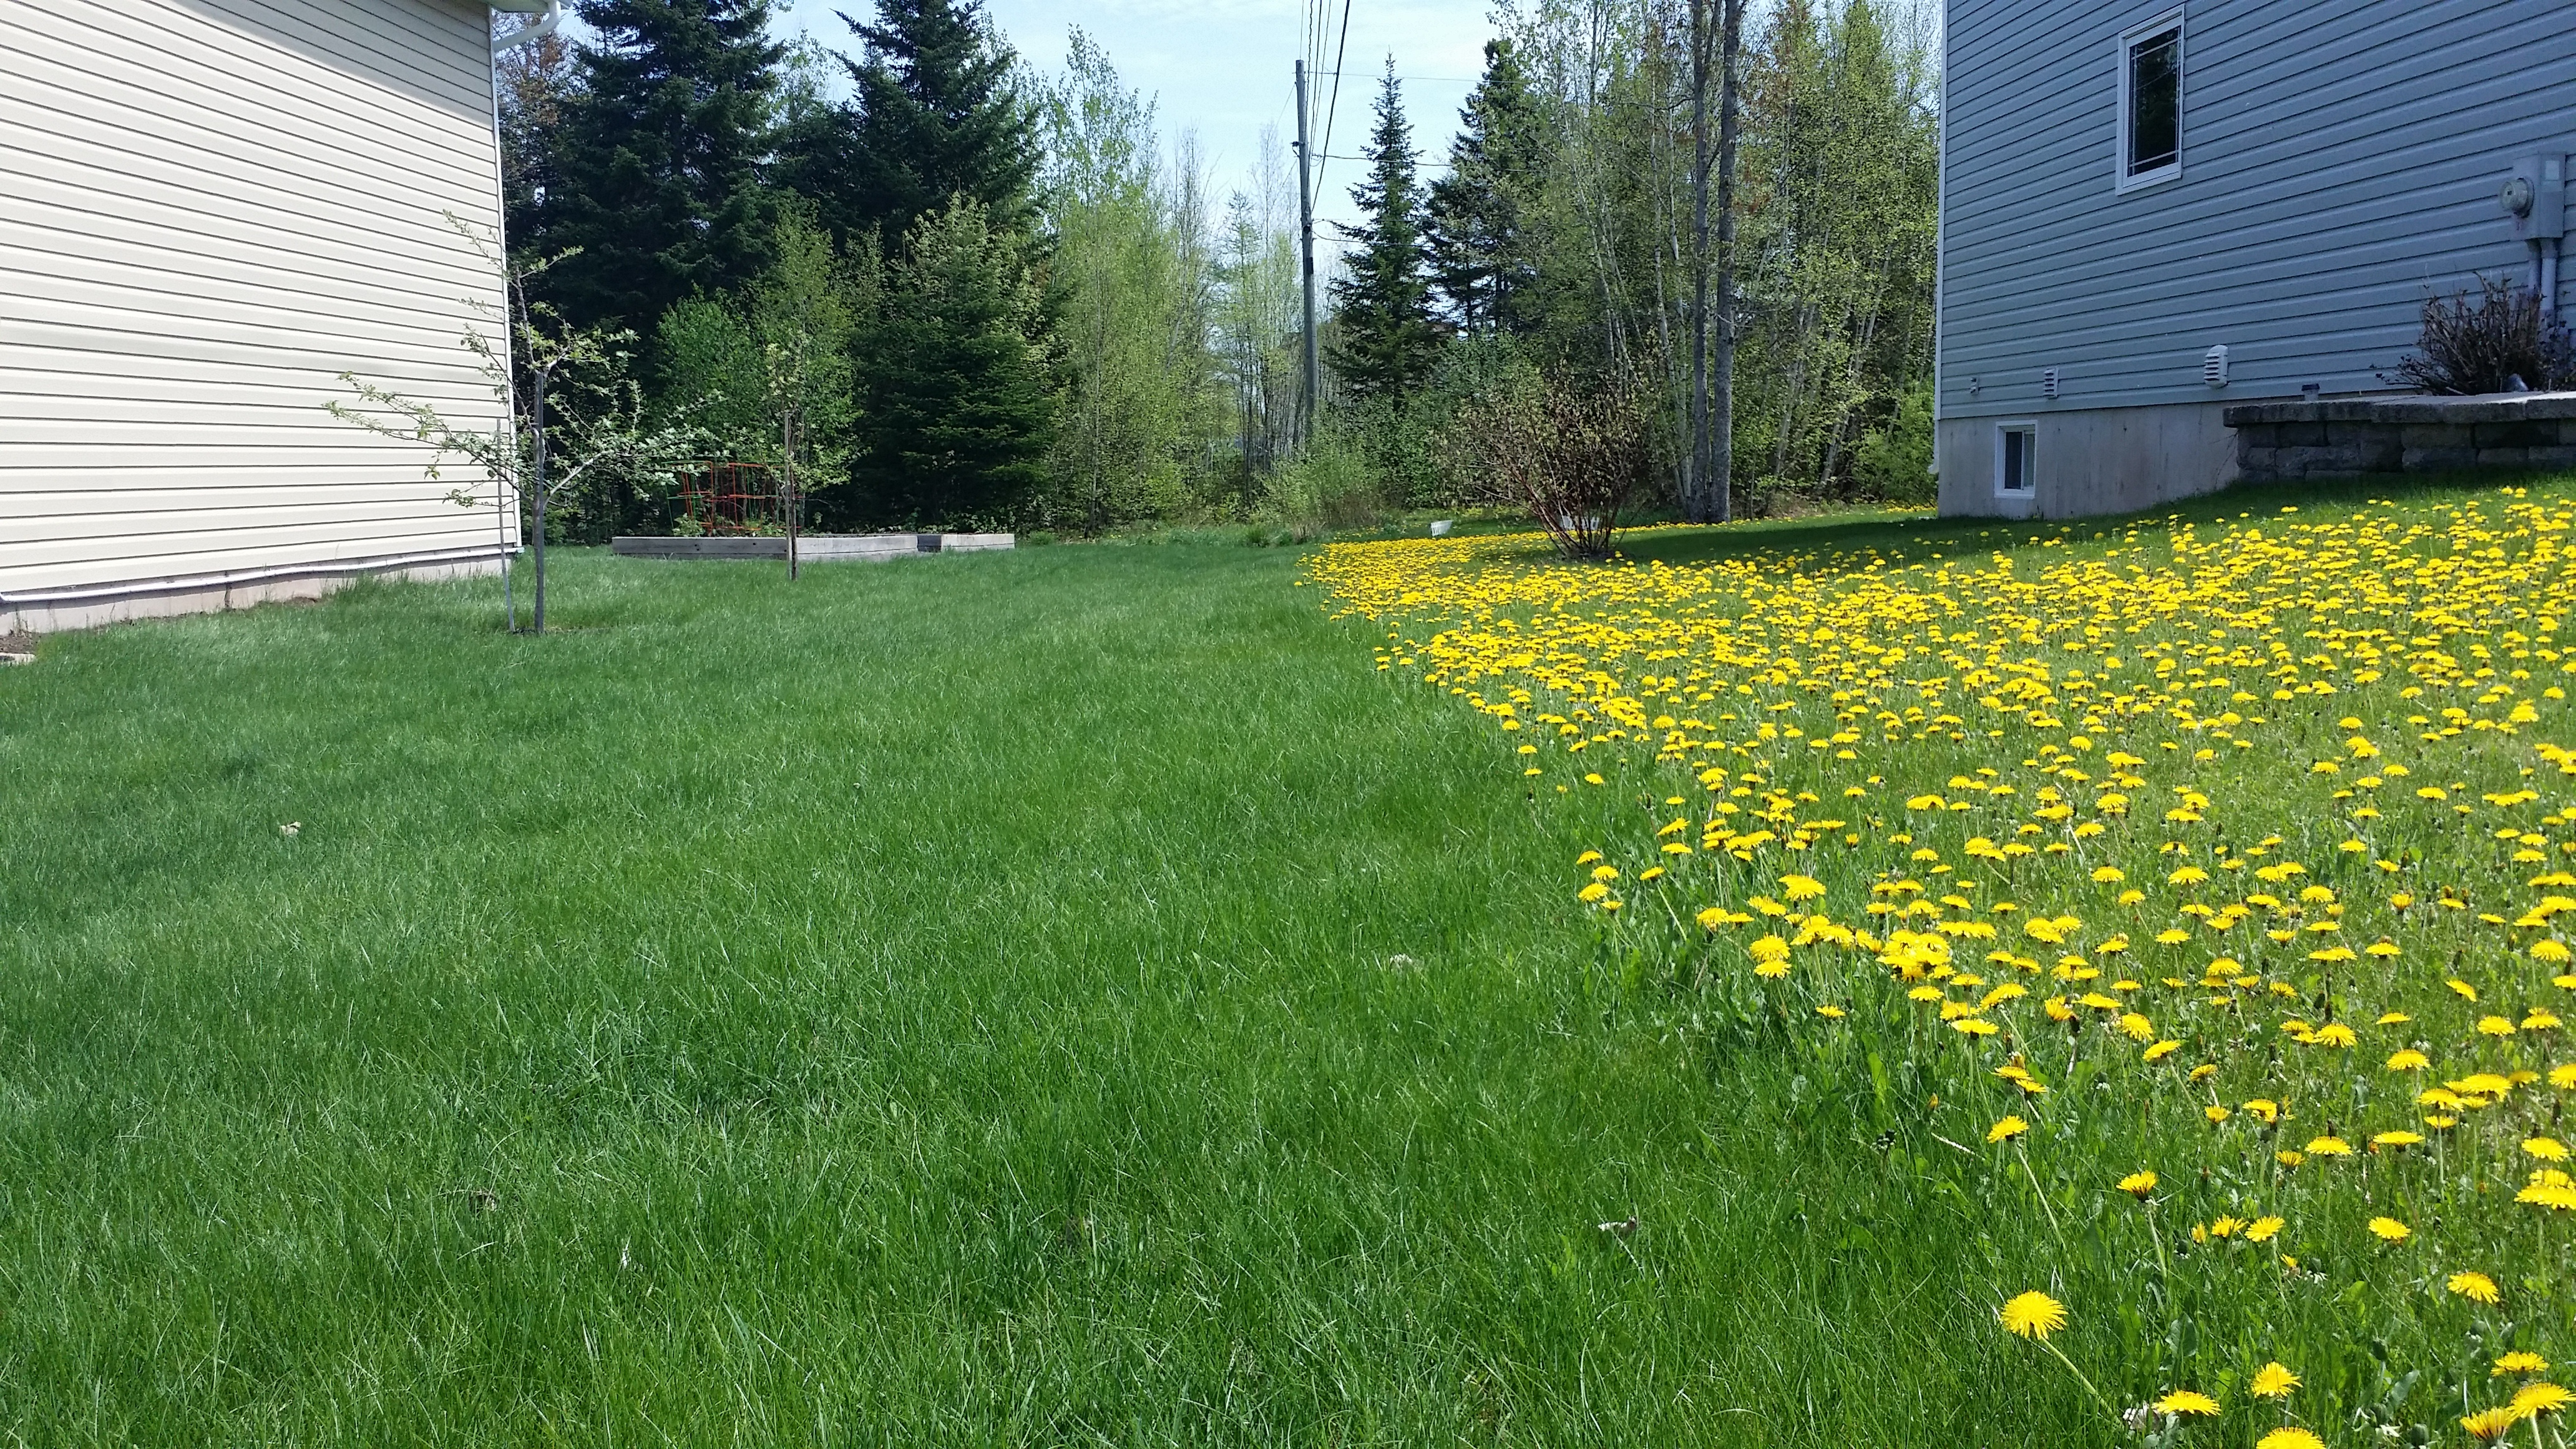 Fiesta Weed Control: Does It Work? - Featured Image